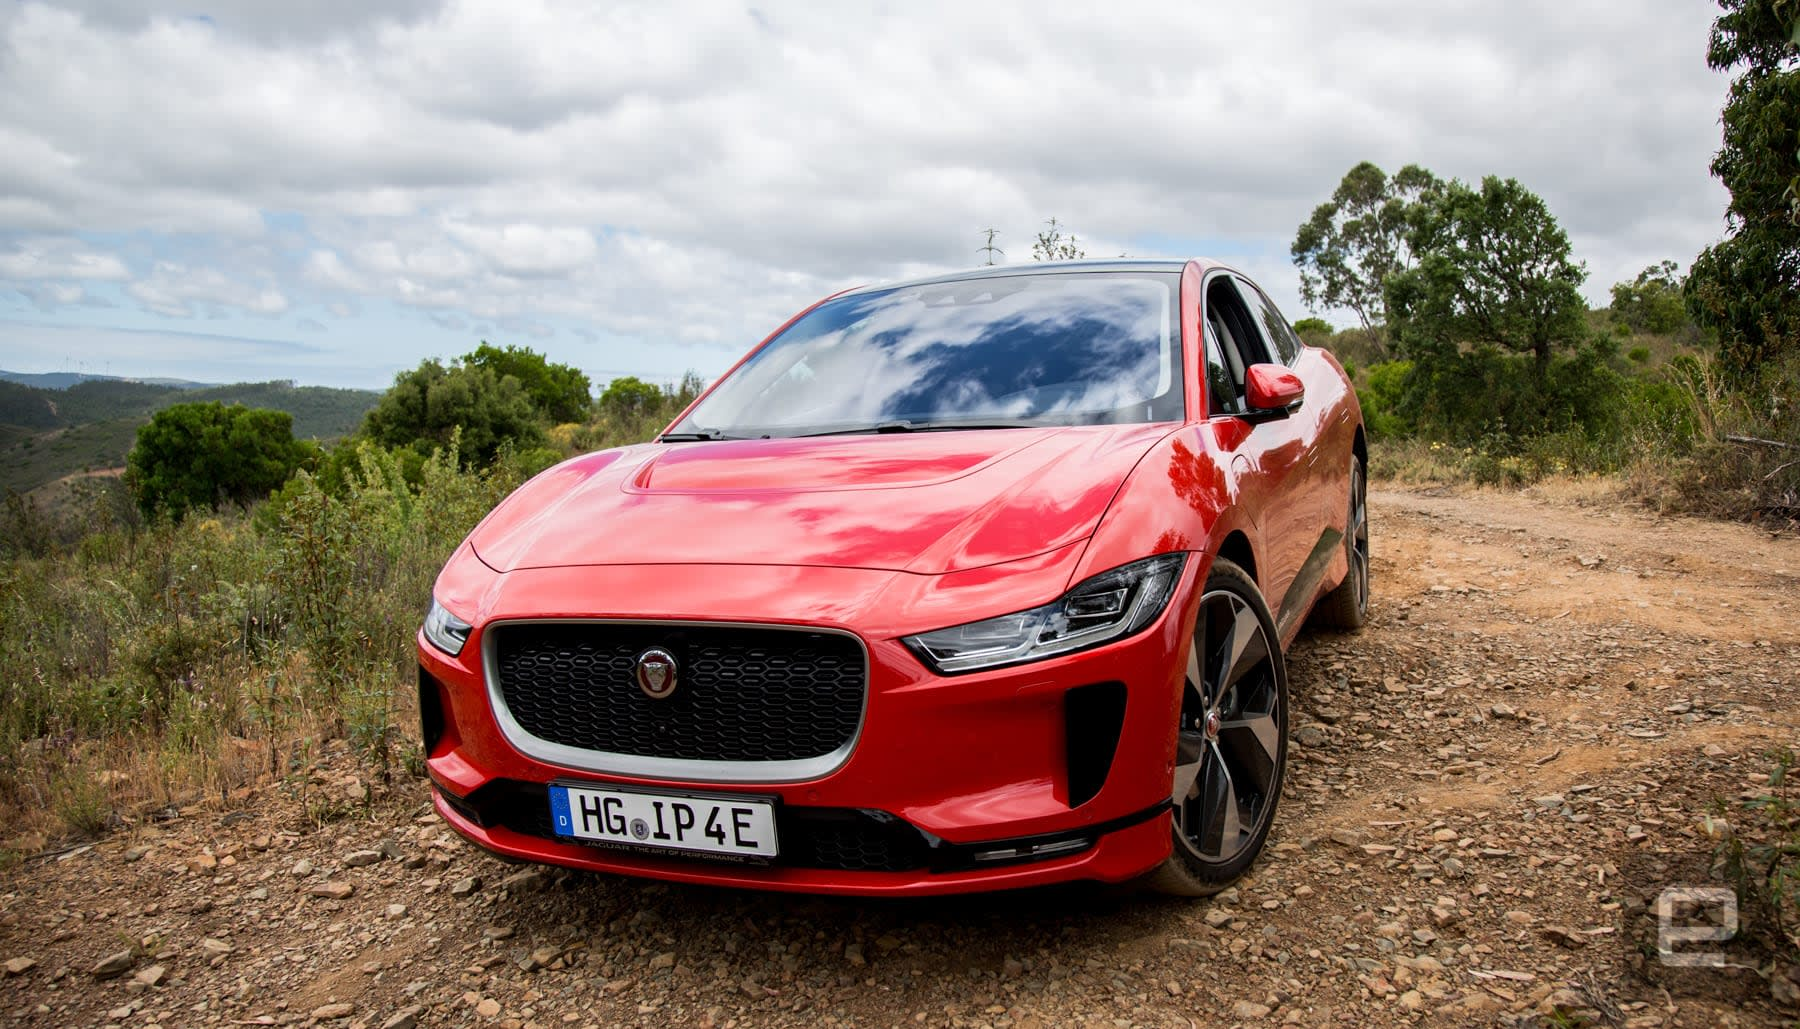 Jaguar woos Tesla owners with $3,000 I-Pace EV discount